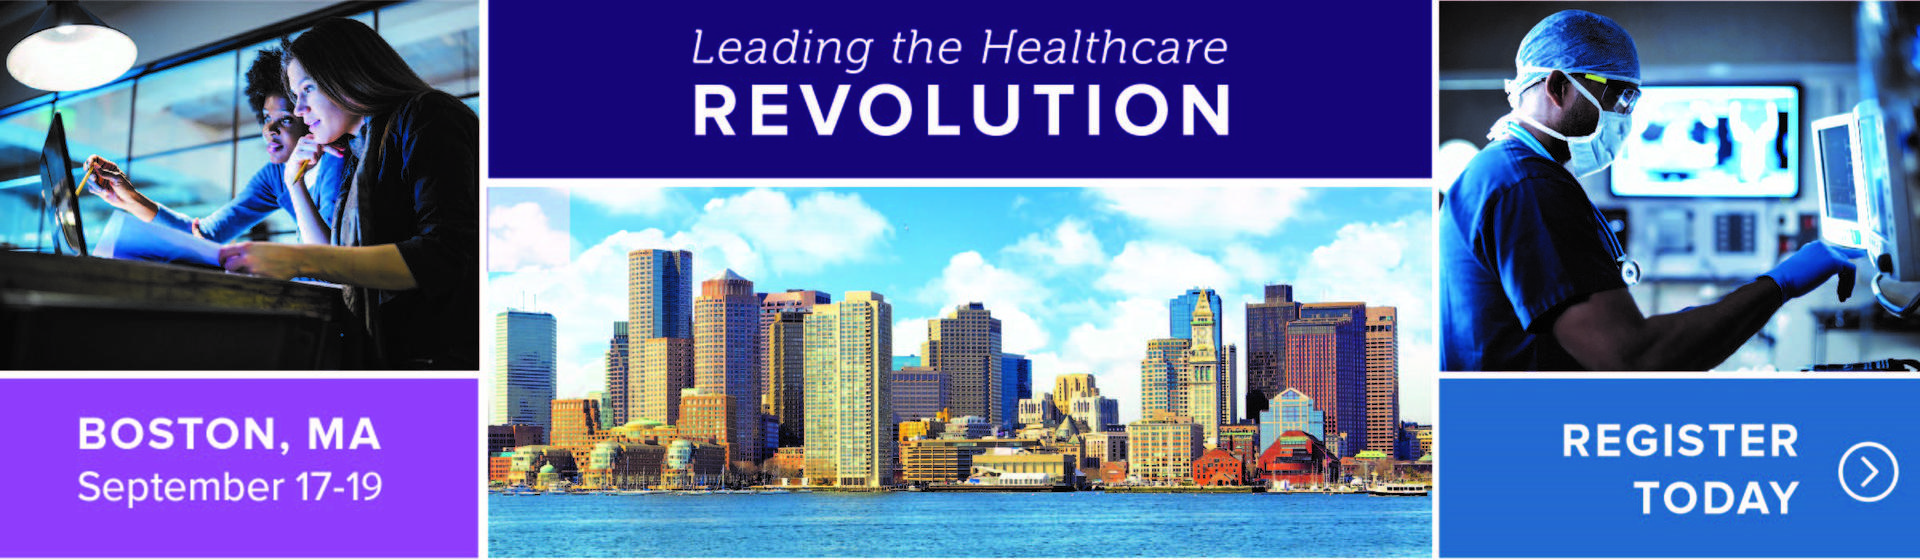 Leading the Healthcare Revolutions